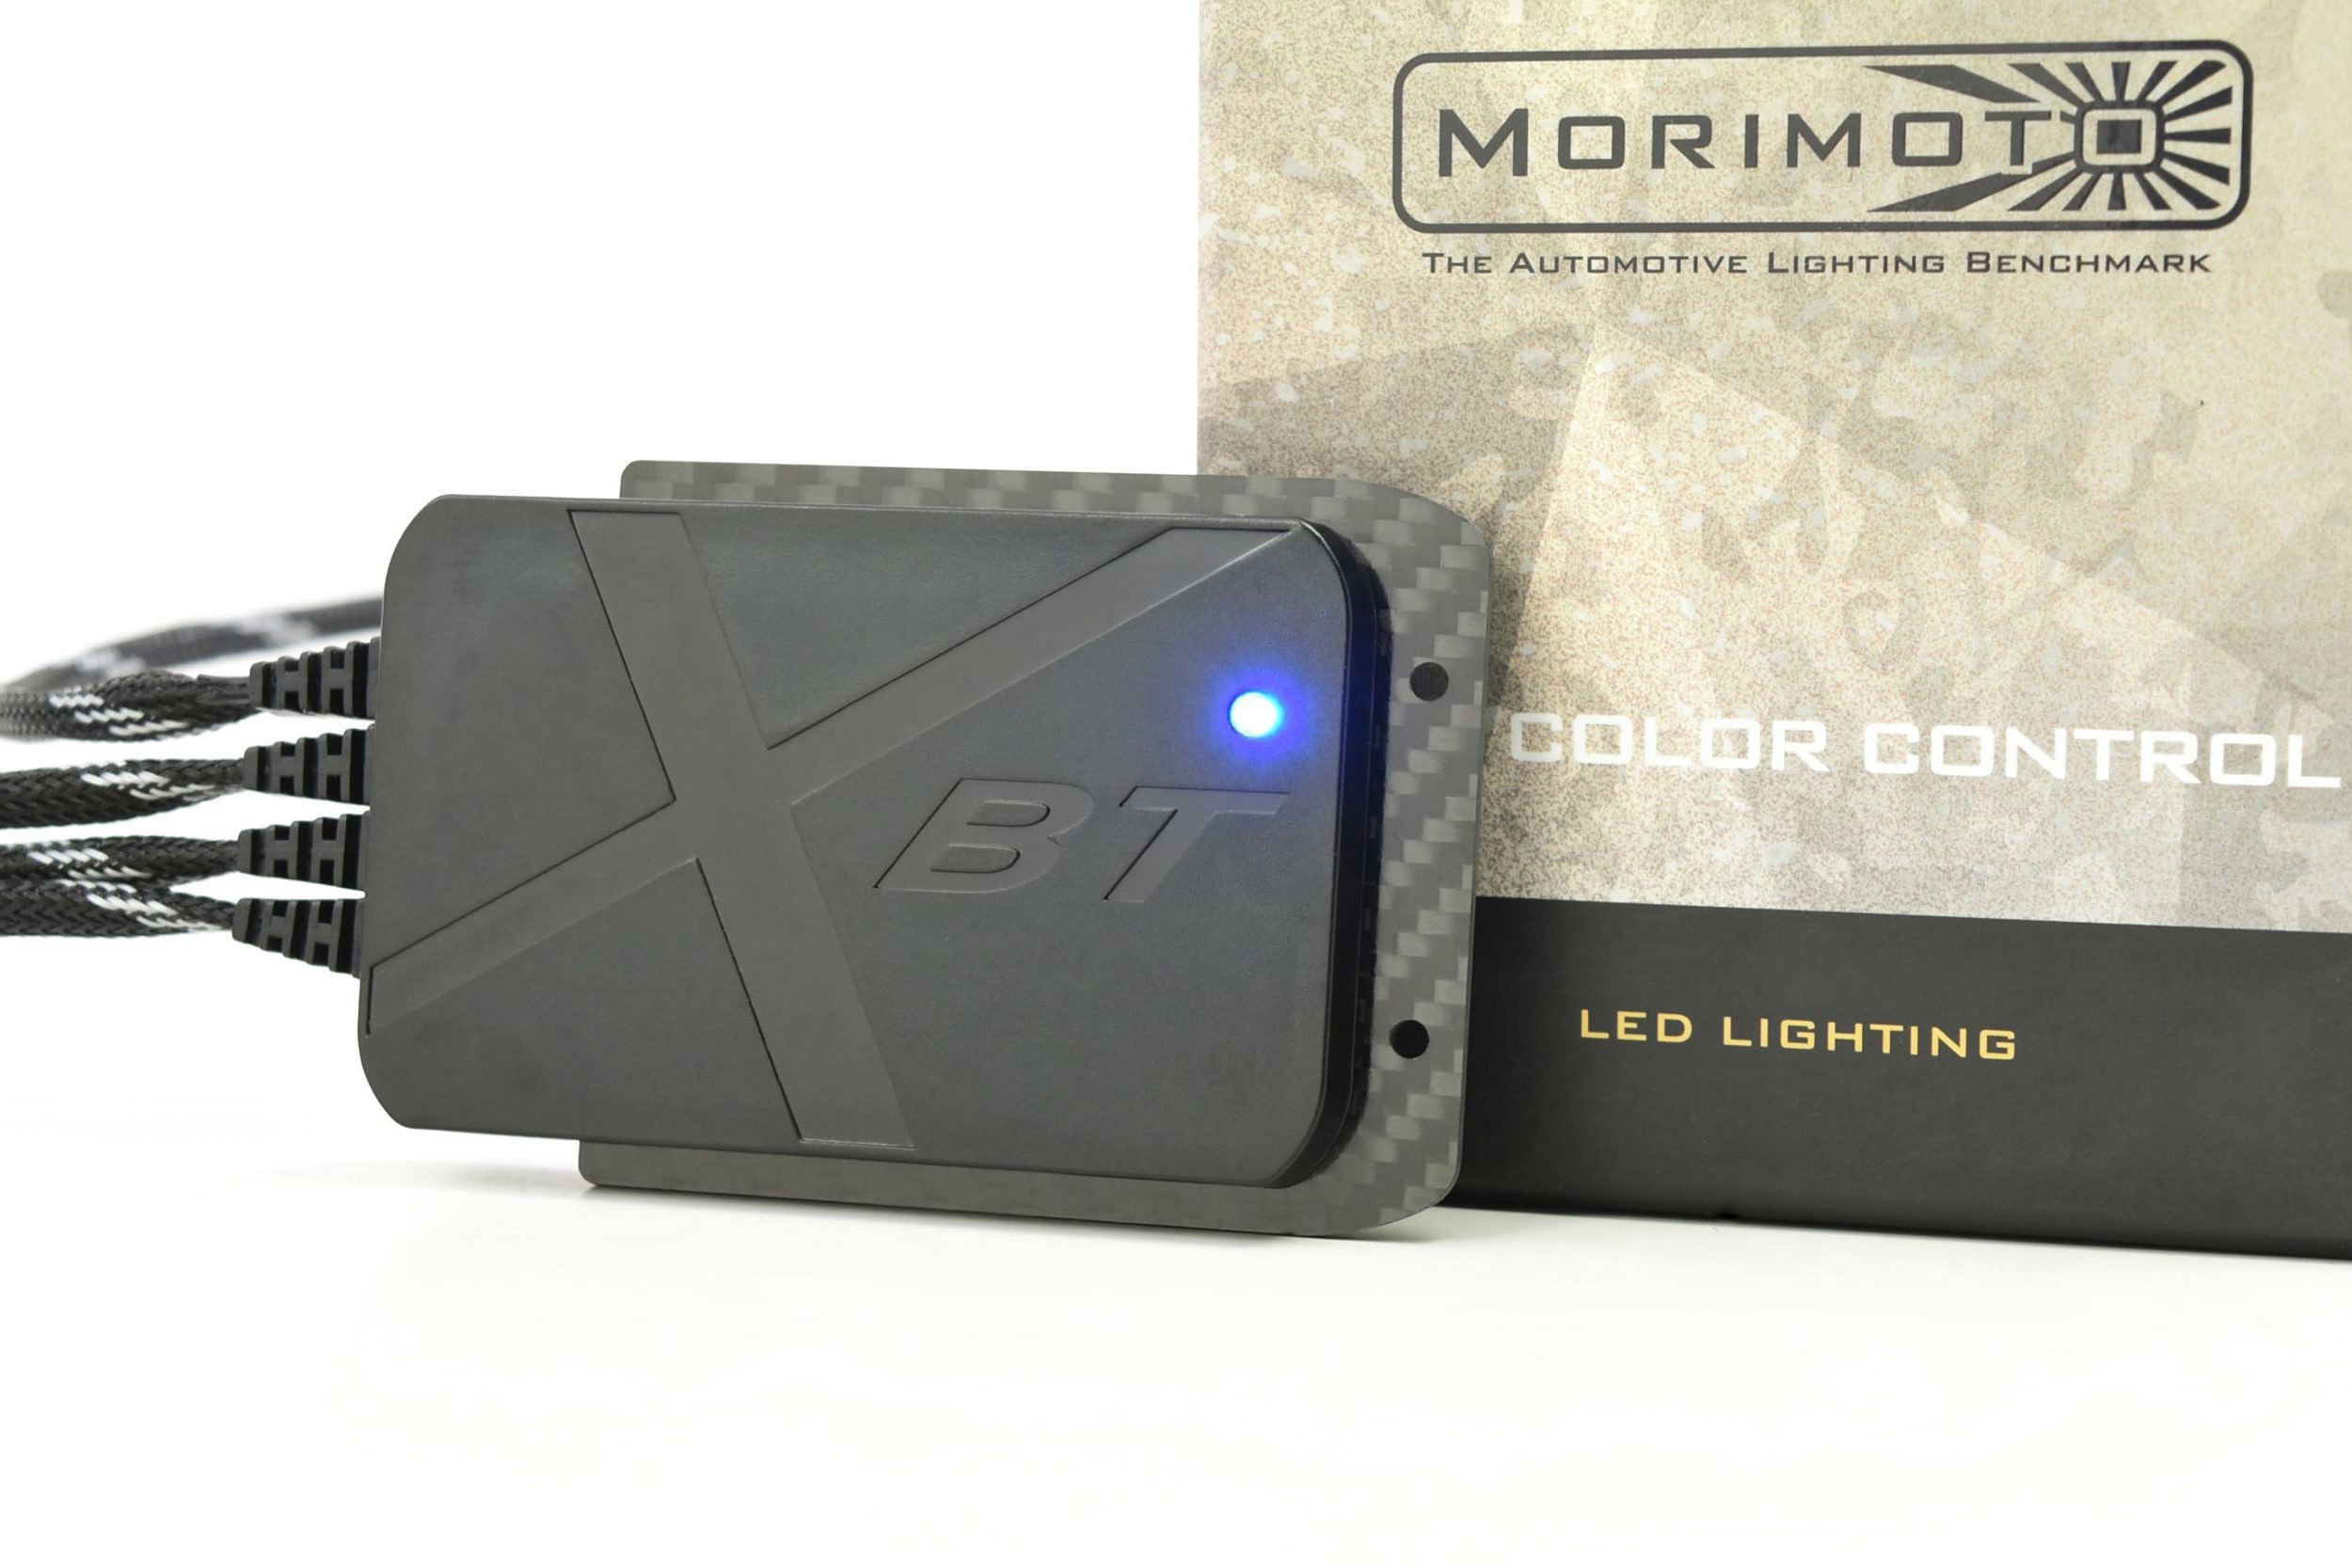 morimoto_xbt_bluetooth_iphone_android_rgb_led_controller_box_1